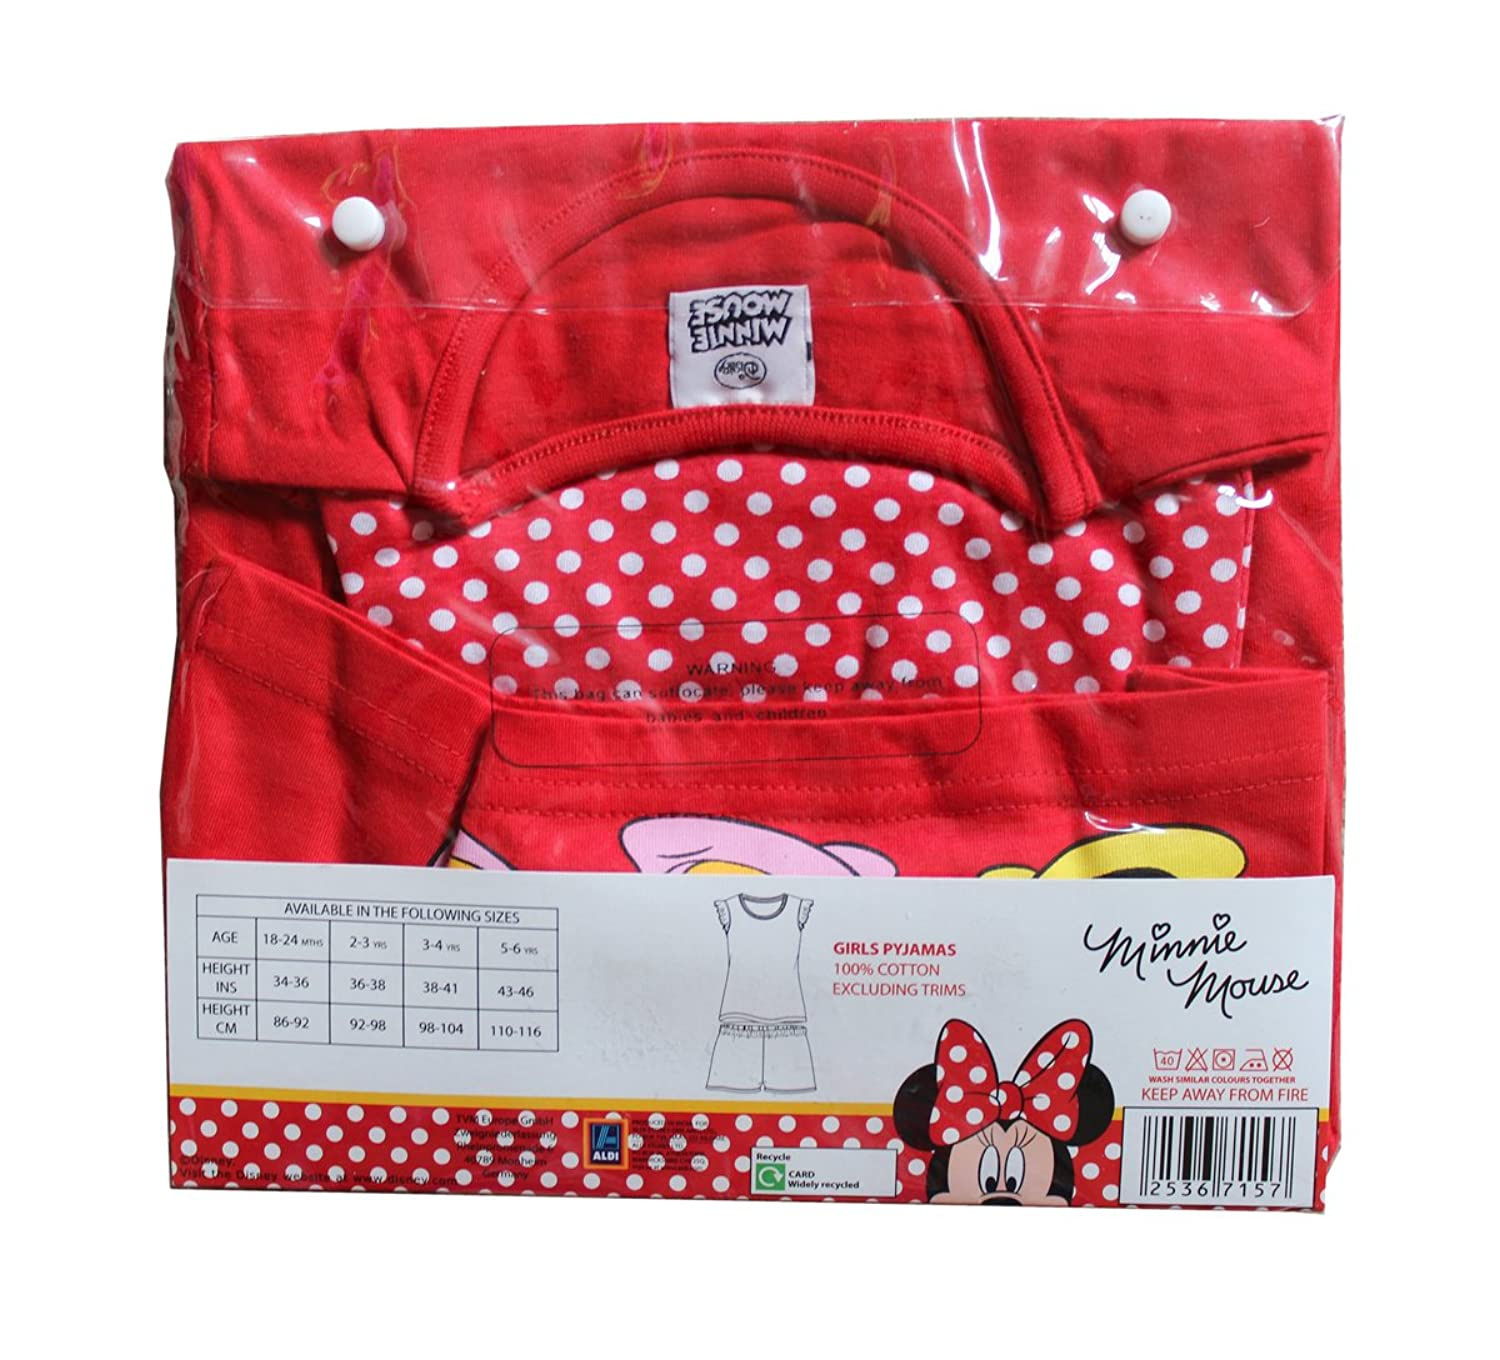 Amazon.com: Original Branded Disney Minnie Mouse Childrens Girls Character 18 Months to 6 Years Red Pyjamas Shirt & Shorts (2-3 YRS): Clothing